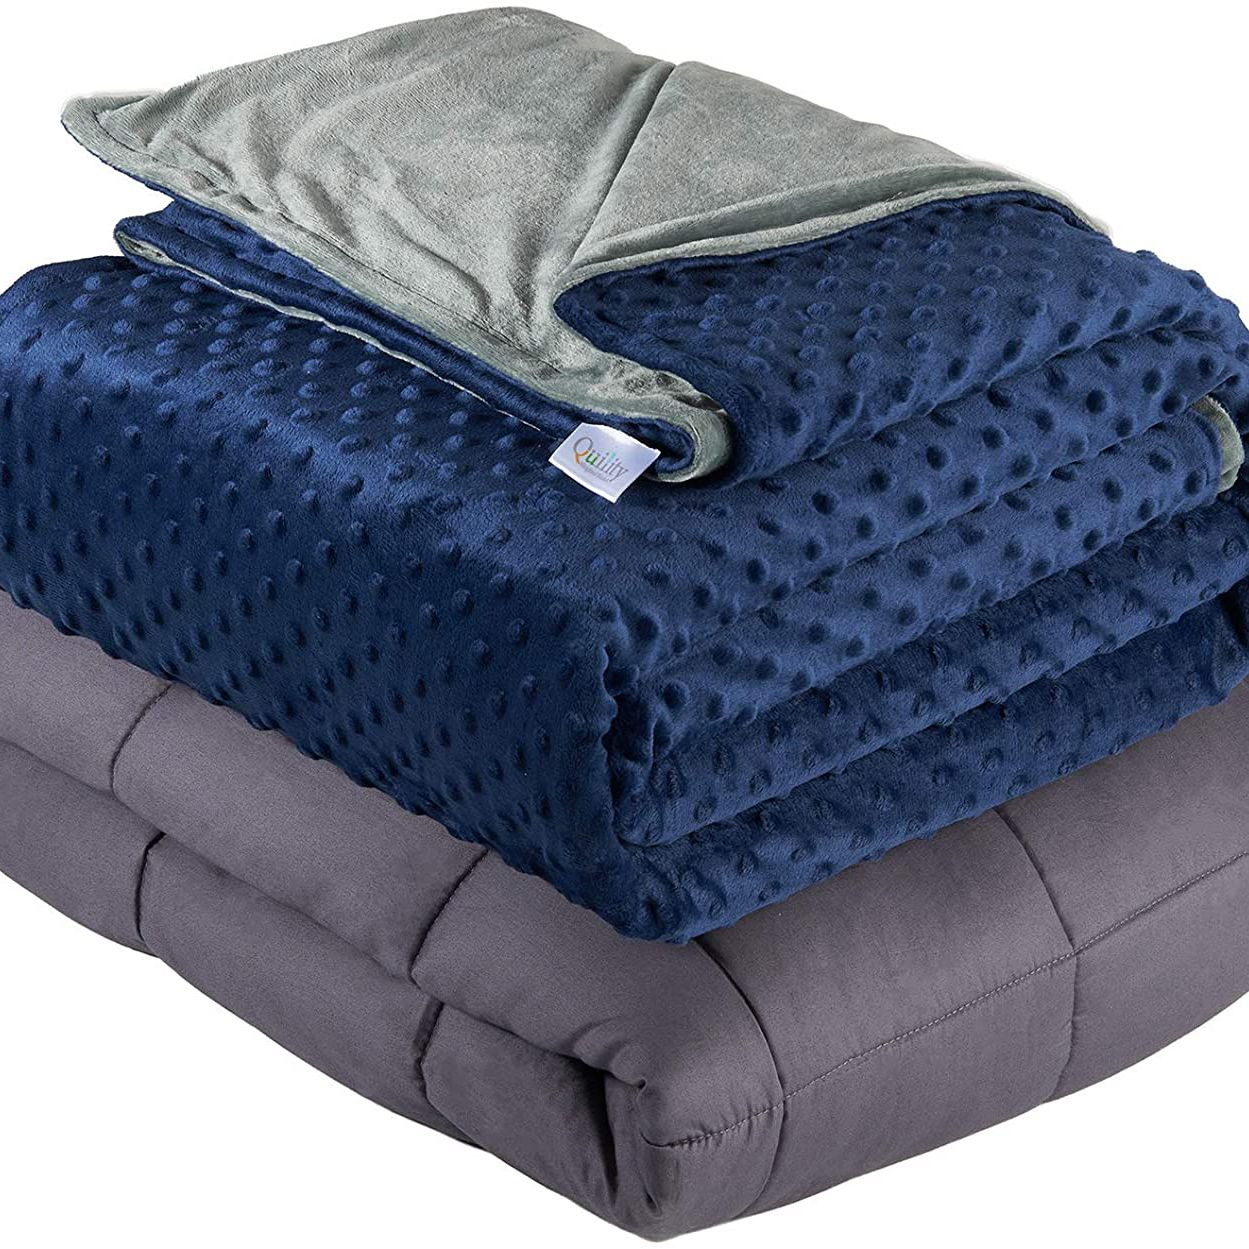 The 8 Best Weighted Blankets Of 2021